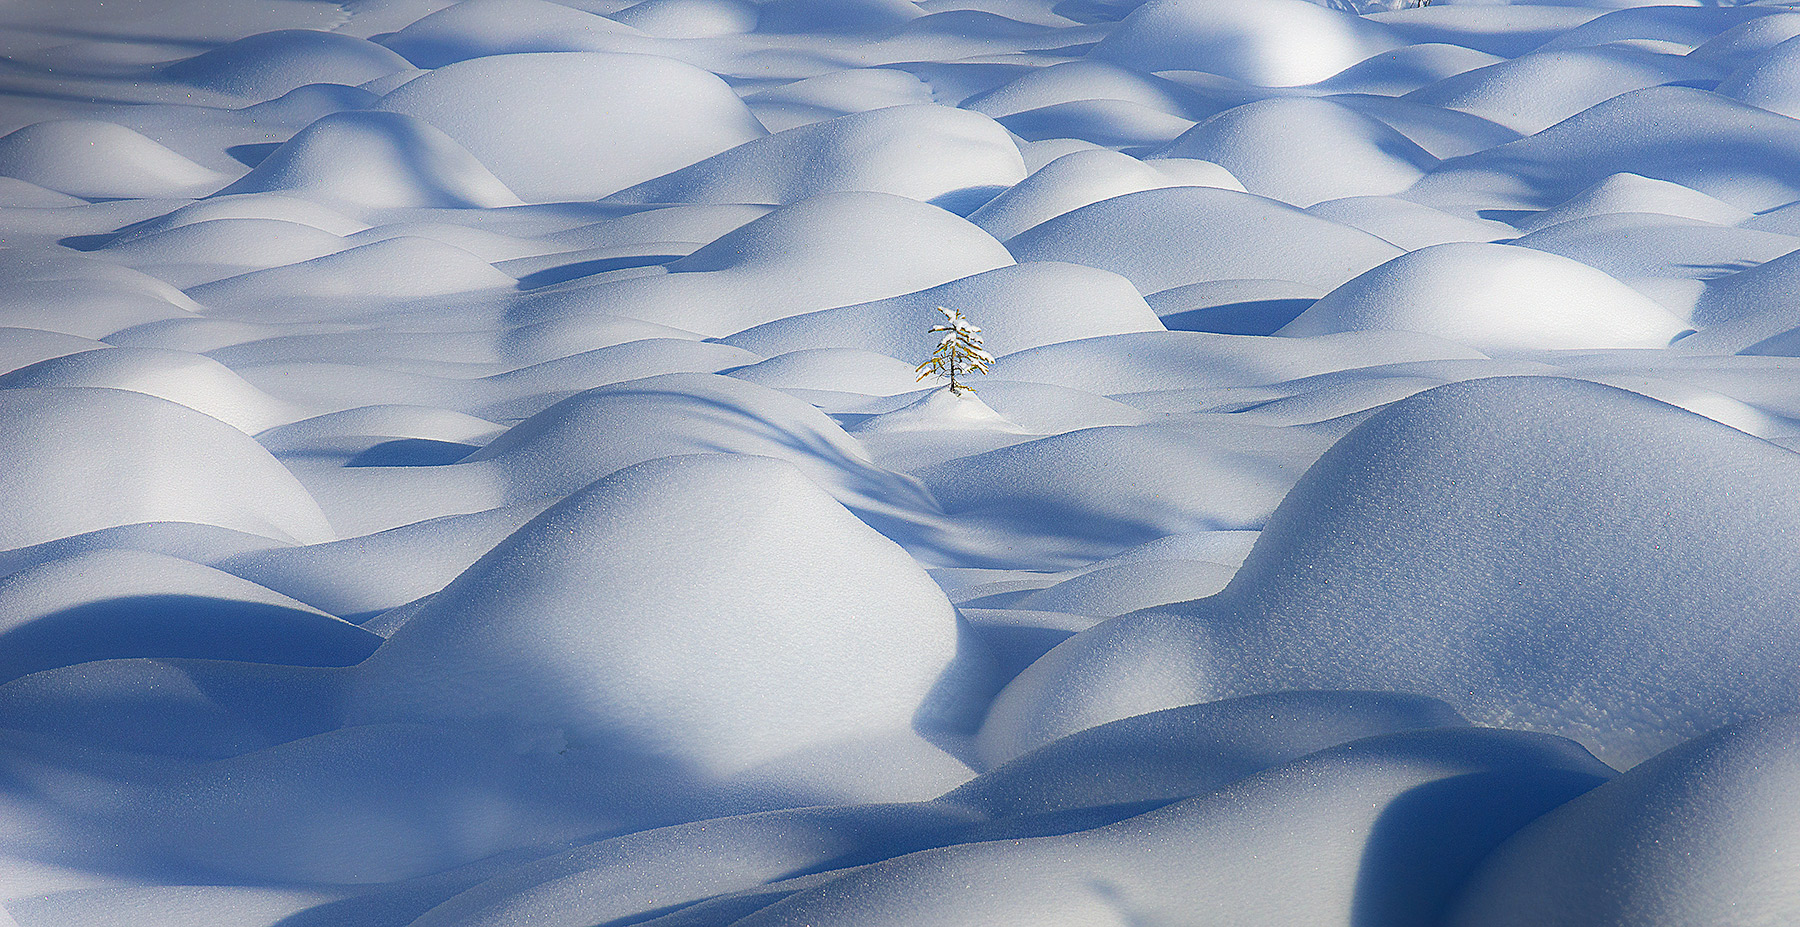 Lone tree, tree, winter, struggle, emerge, canada, jasper, snow, photo